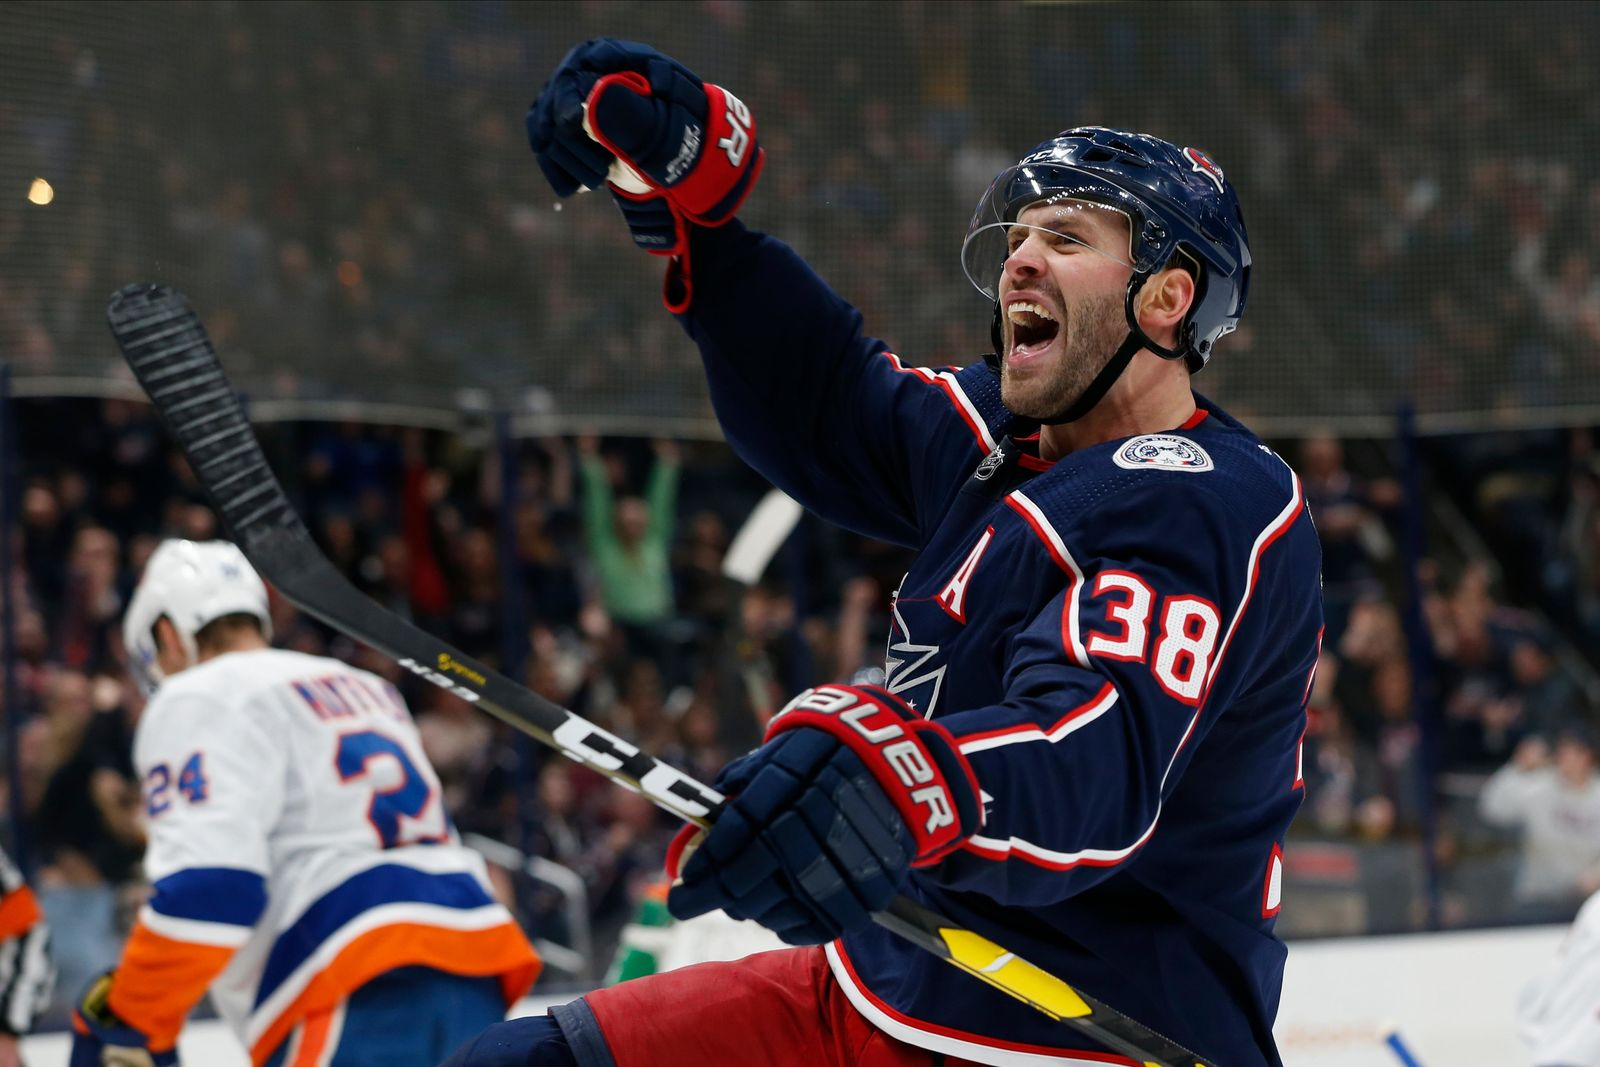 Columbus Blue Jackets' Boone Jenner celebrates his goal against the New York Islanders during the second period of an NHL hockey game Saturday, Oct. 19, 2019, in Columbus, Ohio. (AP Photo/Jay LaPrete)